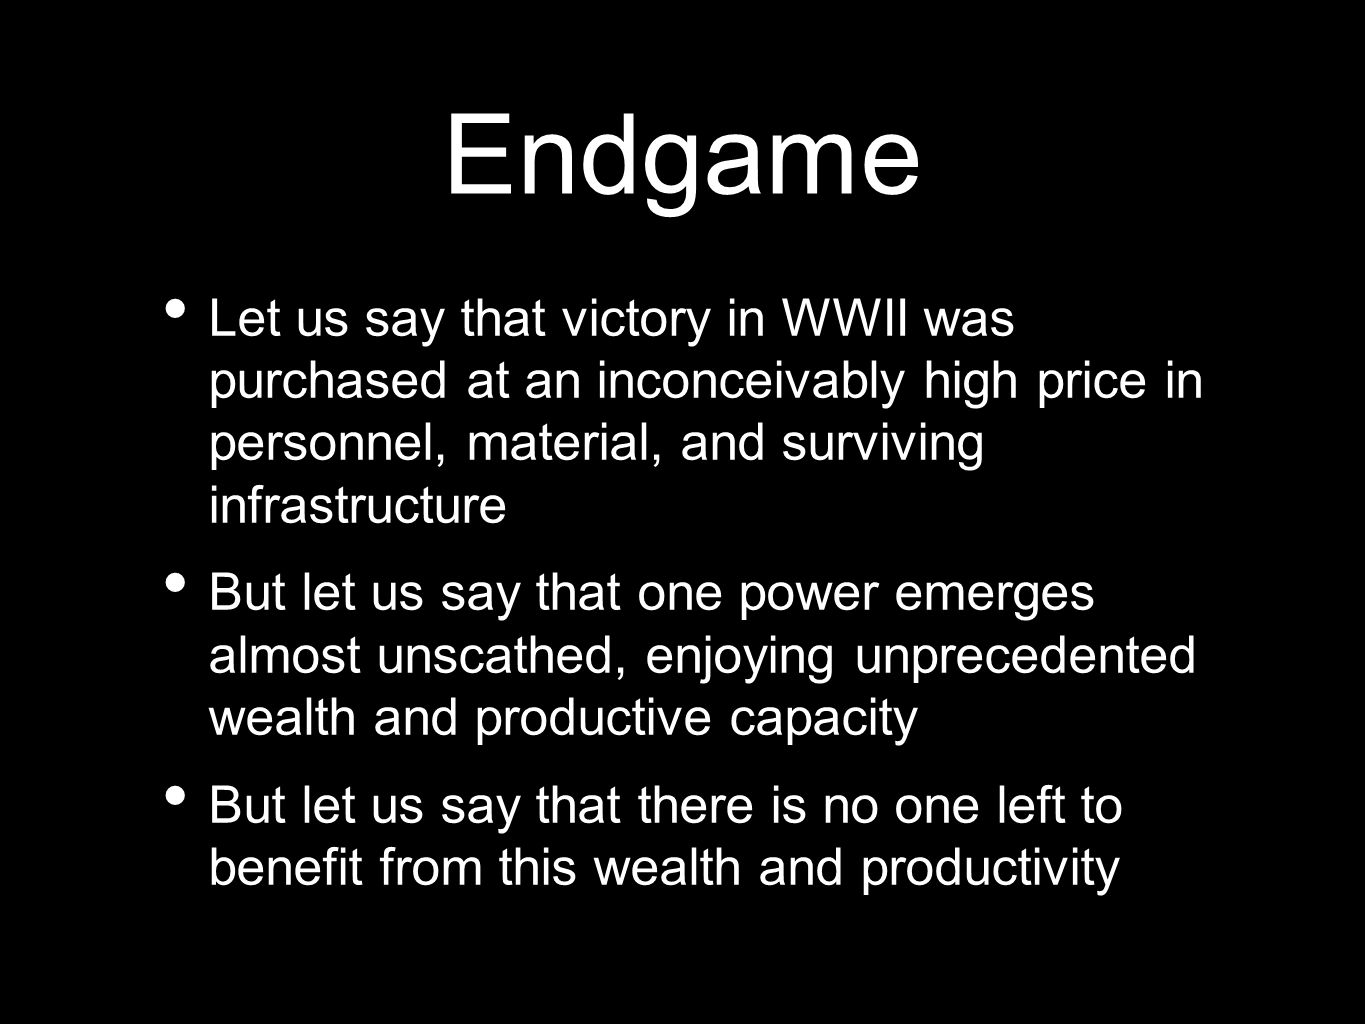 Endgame Let us say that victory in WWII was purchased at an inconceivably high price in personnel, material, and surviving infrastructure But let us say that one power emerges almost unscathed, enjoying unprecedented wealth and productive capacity But let us say that there is no one left to benefit from this wealth and productivity